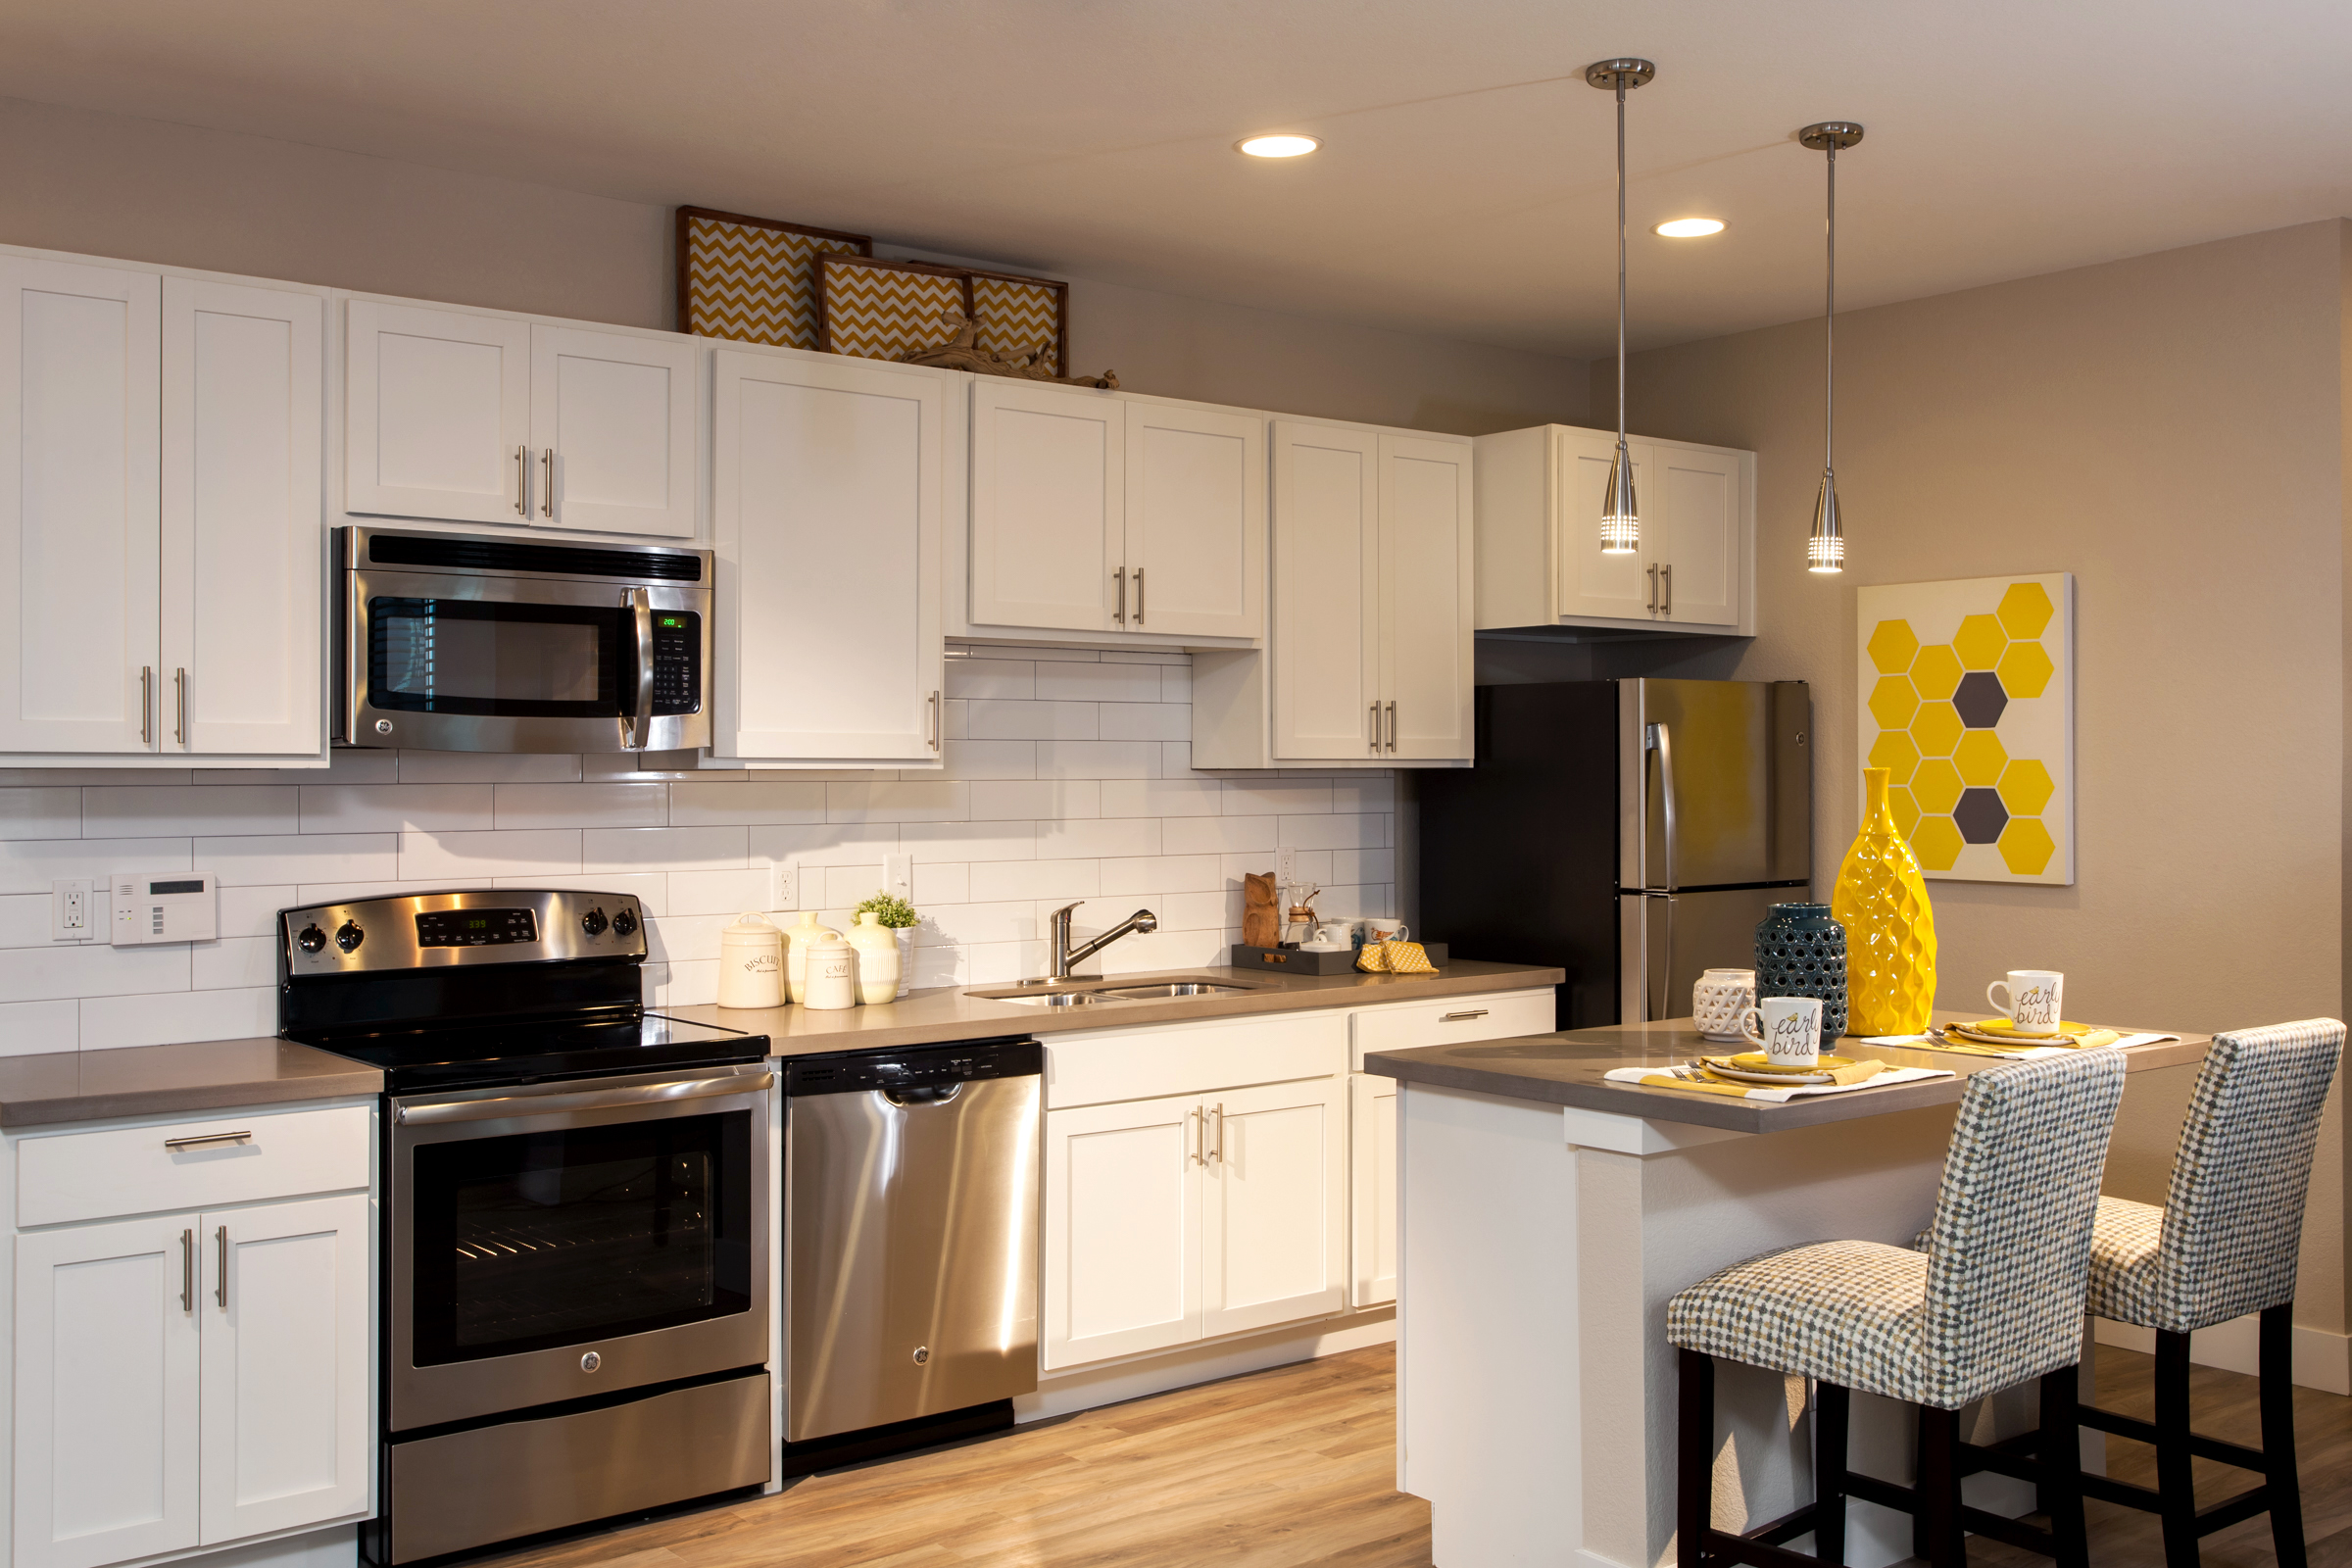 05-Upscale Finishes, Without Sacrificing Convenience in the Kitchens.jpg